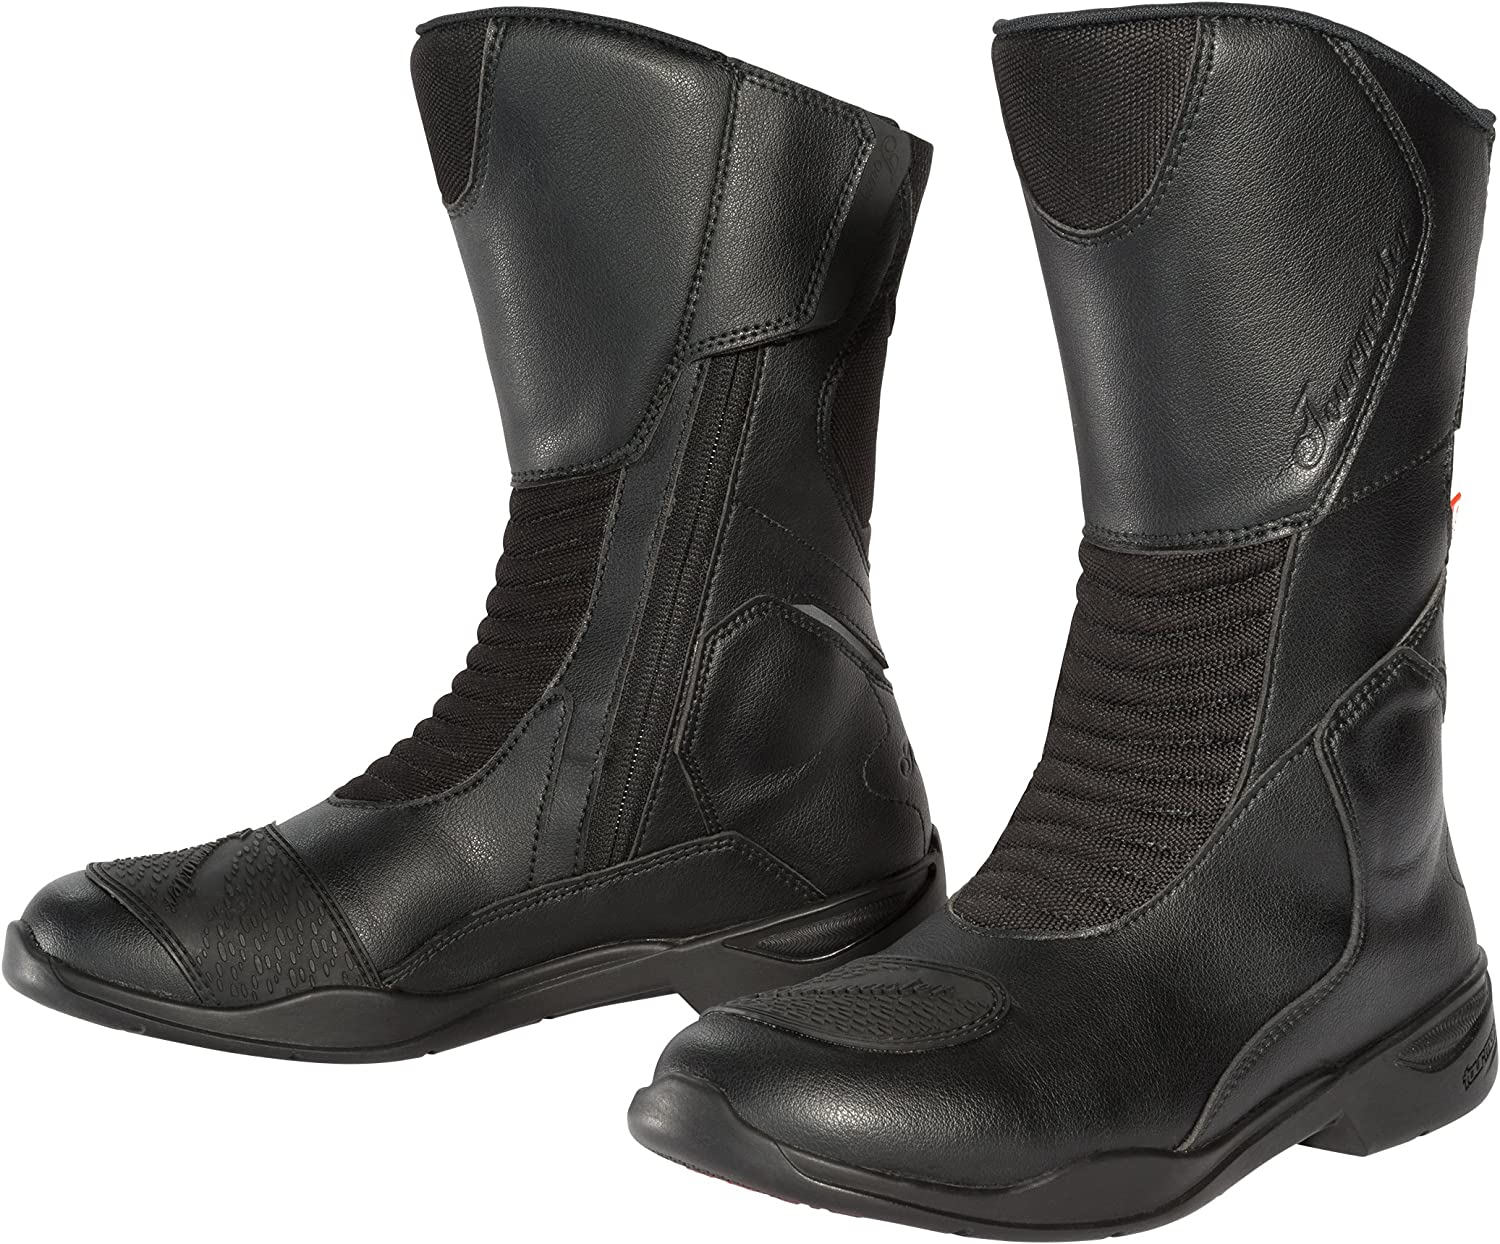 TourMaster Women's Trinity Be super welcome Motorcycle Quality inspection Boots Touring